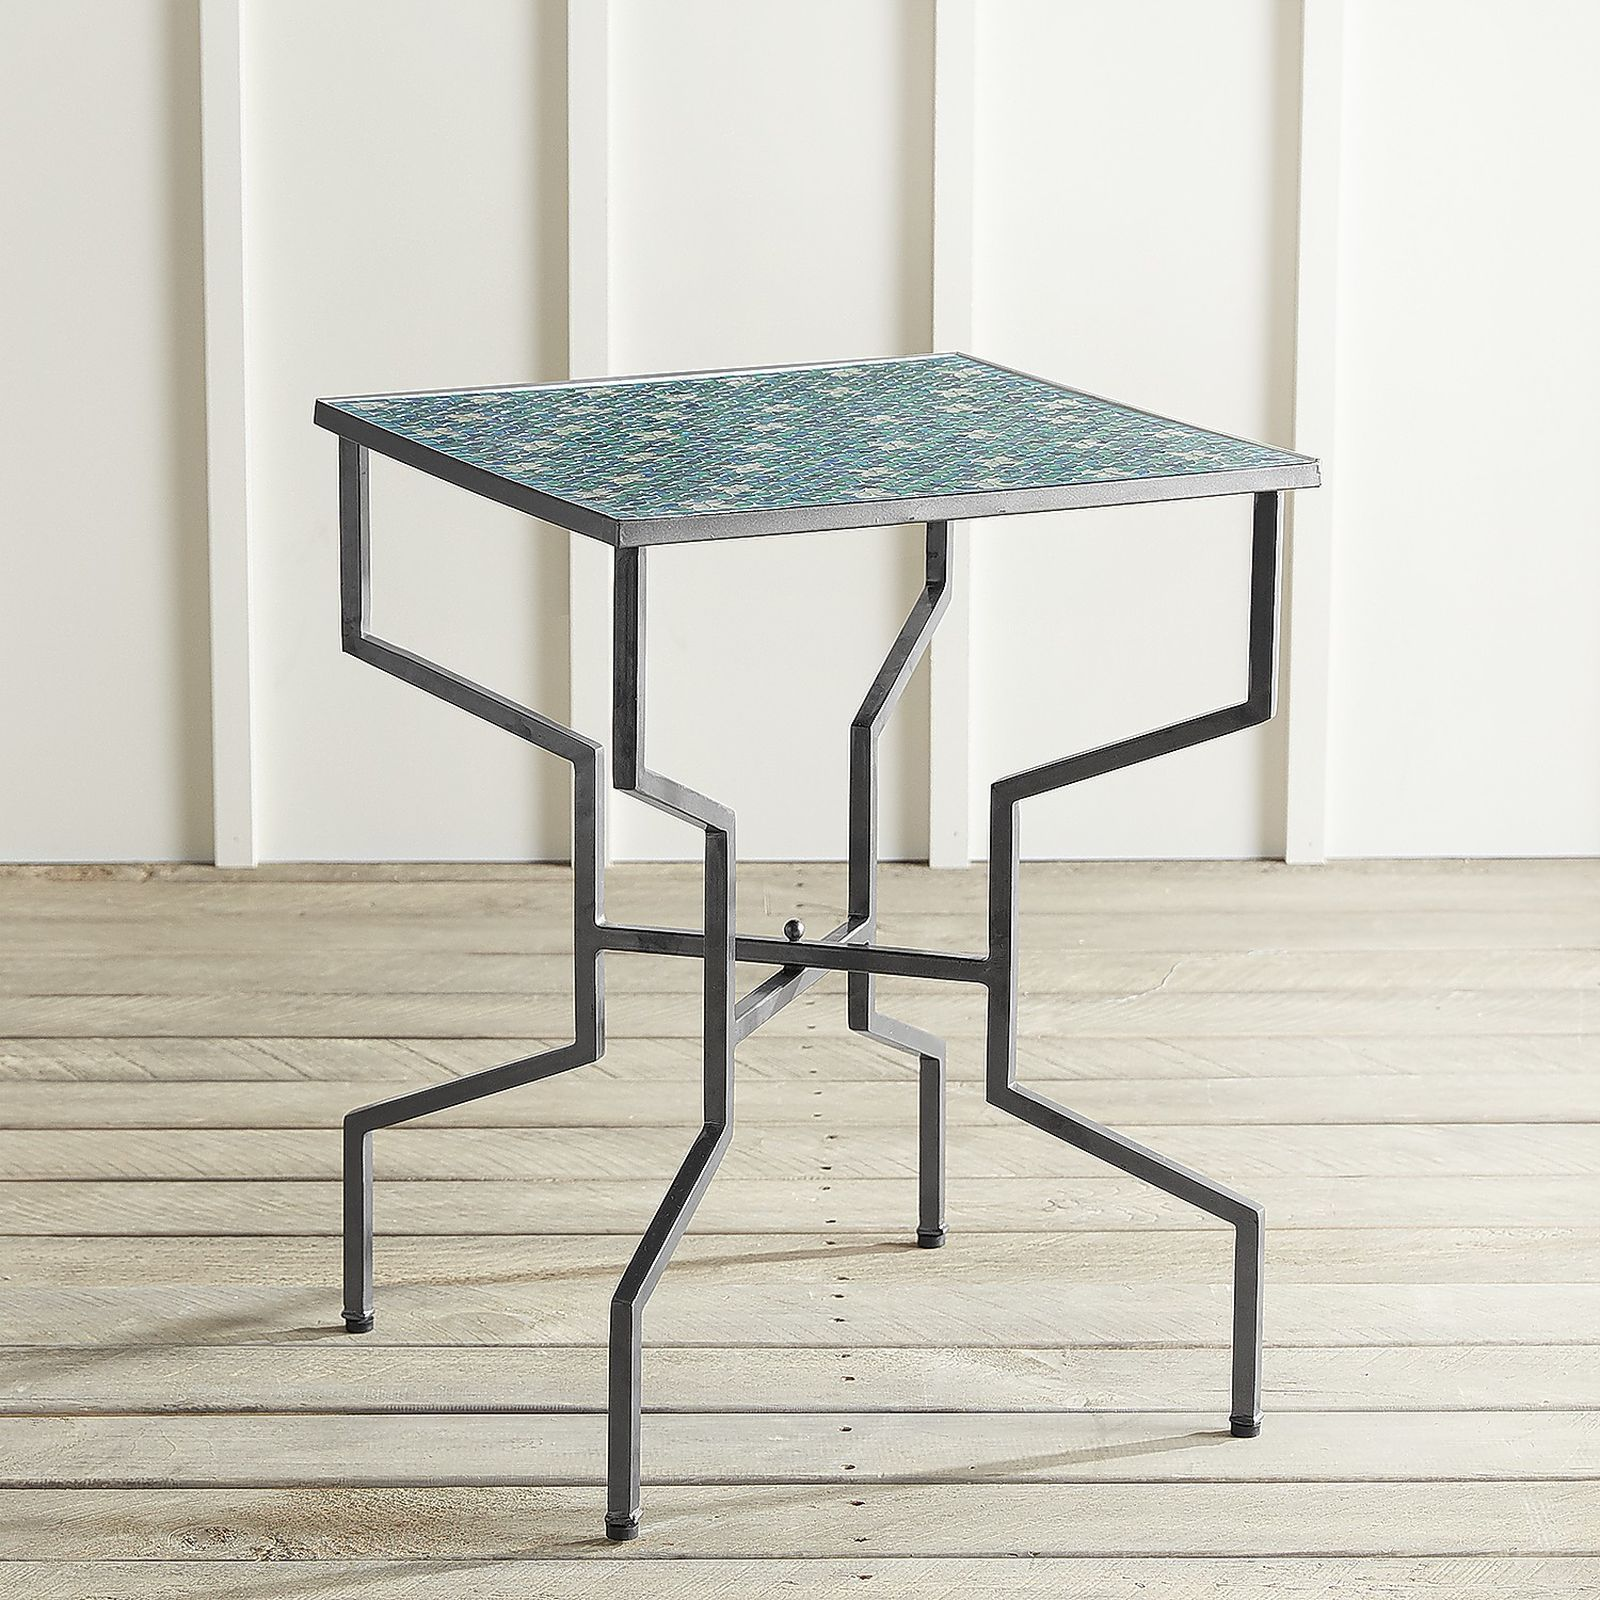 pier imports desk awesome julian mosaic accent table tables rustic wine rack chairside end glass top side bunnings chairs and contemporary bedroom lamps west elm coupon code